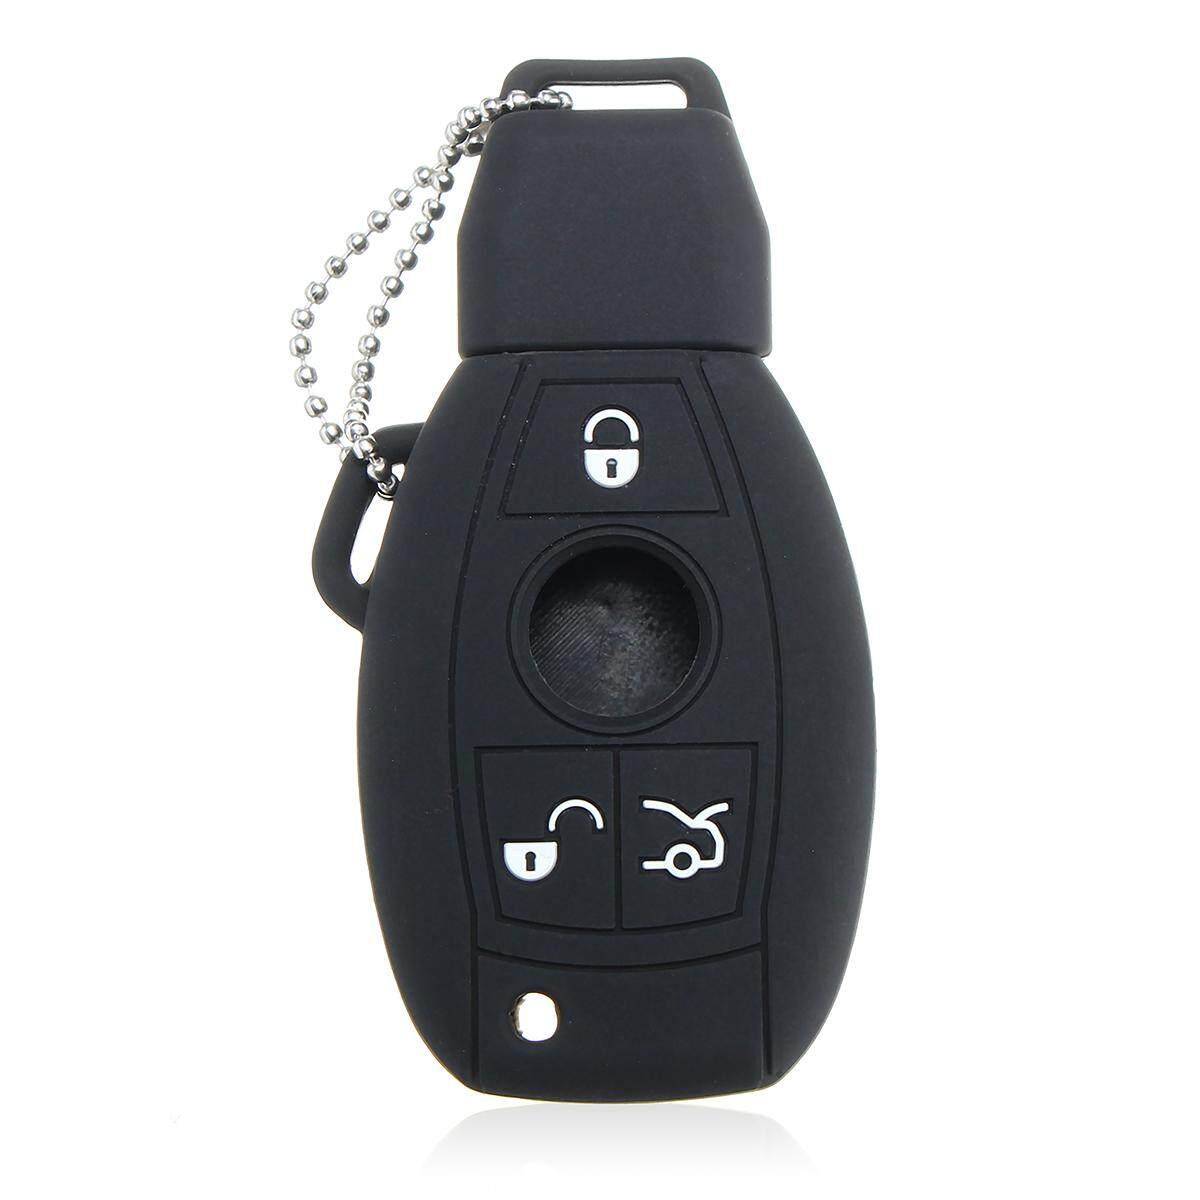 Silica Gel Remote Control Key Protect Sleeve For Mercedes-Benz (Black)